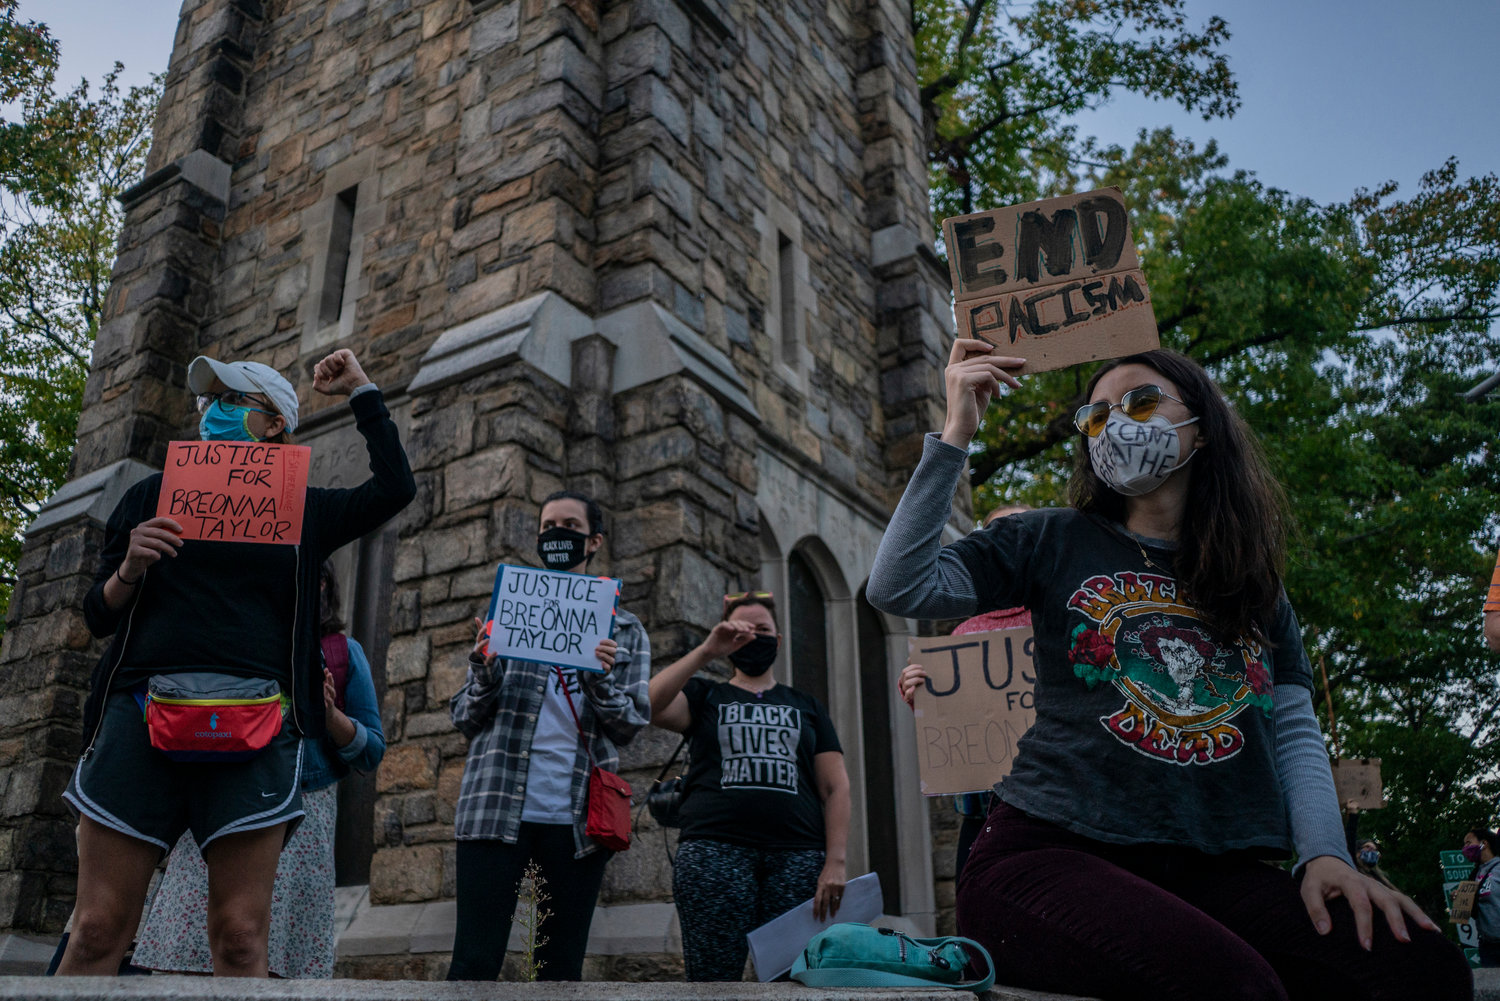 The coronavirus pandemic may have limited crowds at places like the Riverdale Monument, but that didn't stop people from using the central place to protest police violence against people of color in the wake of the George Floyd murder in Minneapolis.